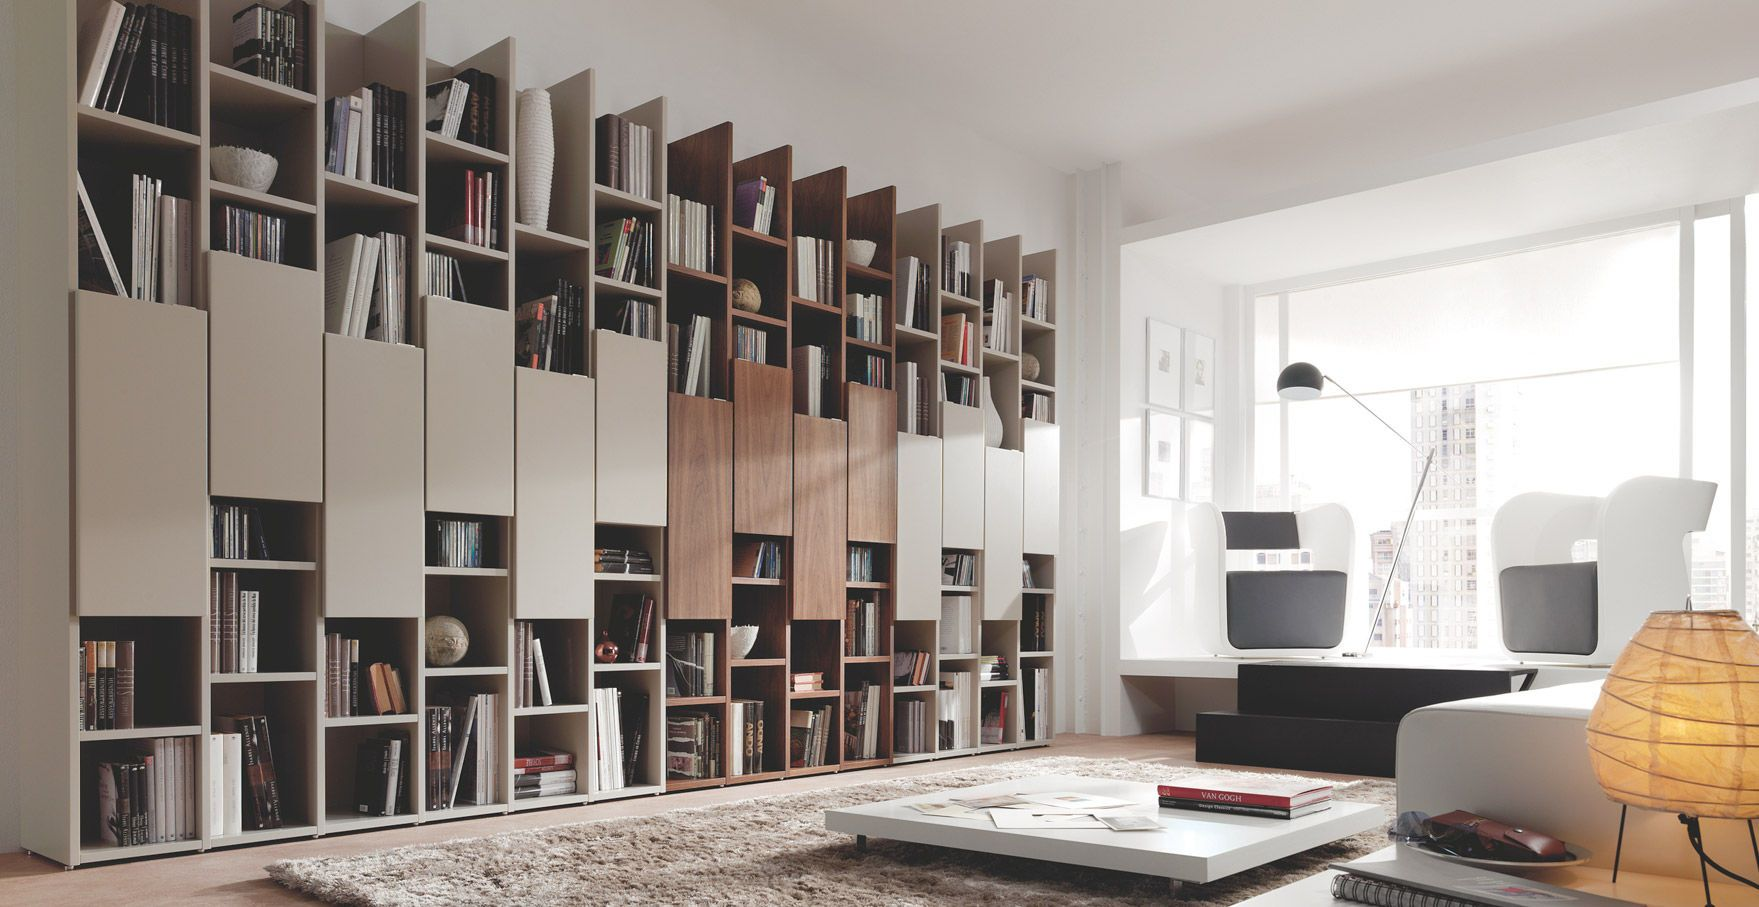 biblioth que murale contemporaine m5 piferrer biblioth que pinterest biblioth que murale. Black Bedroom Furniture Sets. Home Design Ideas